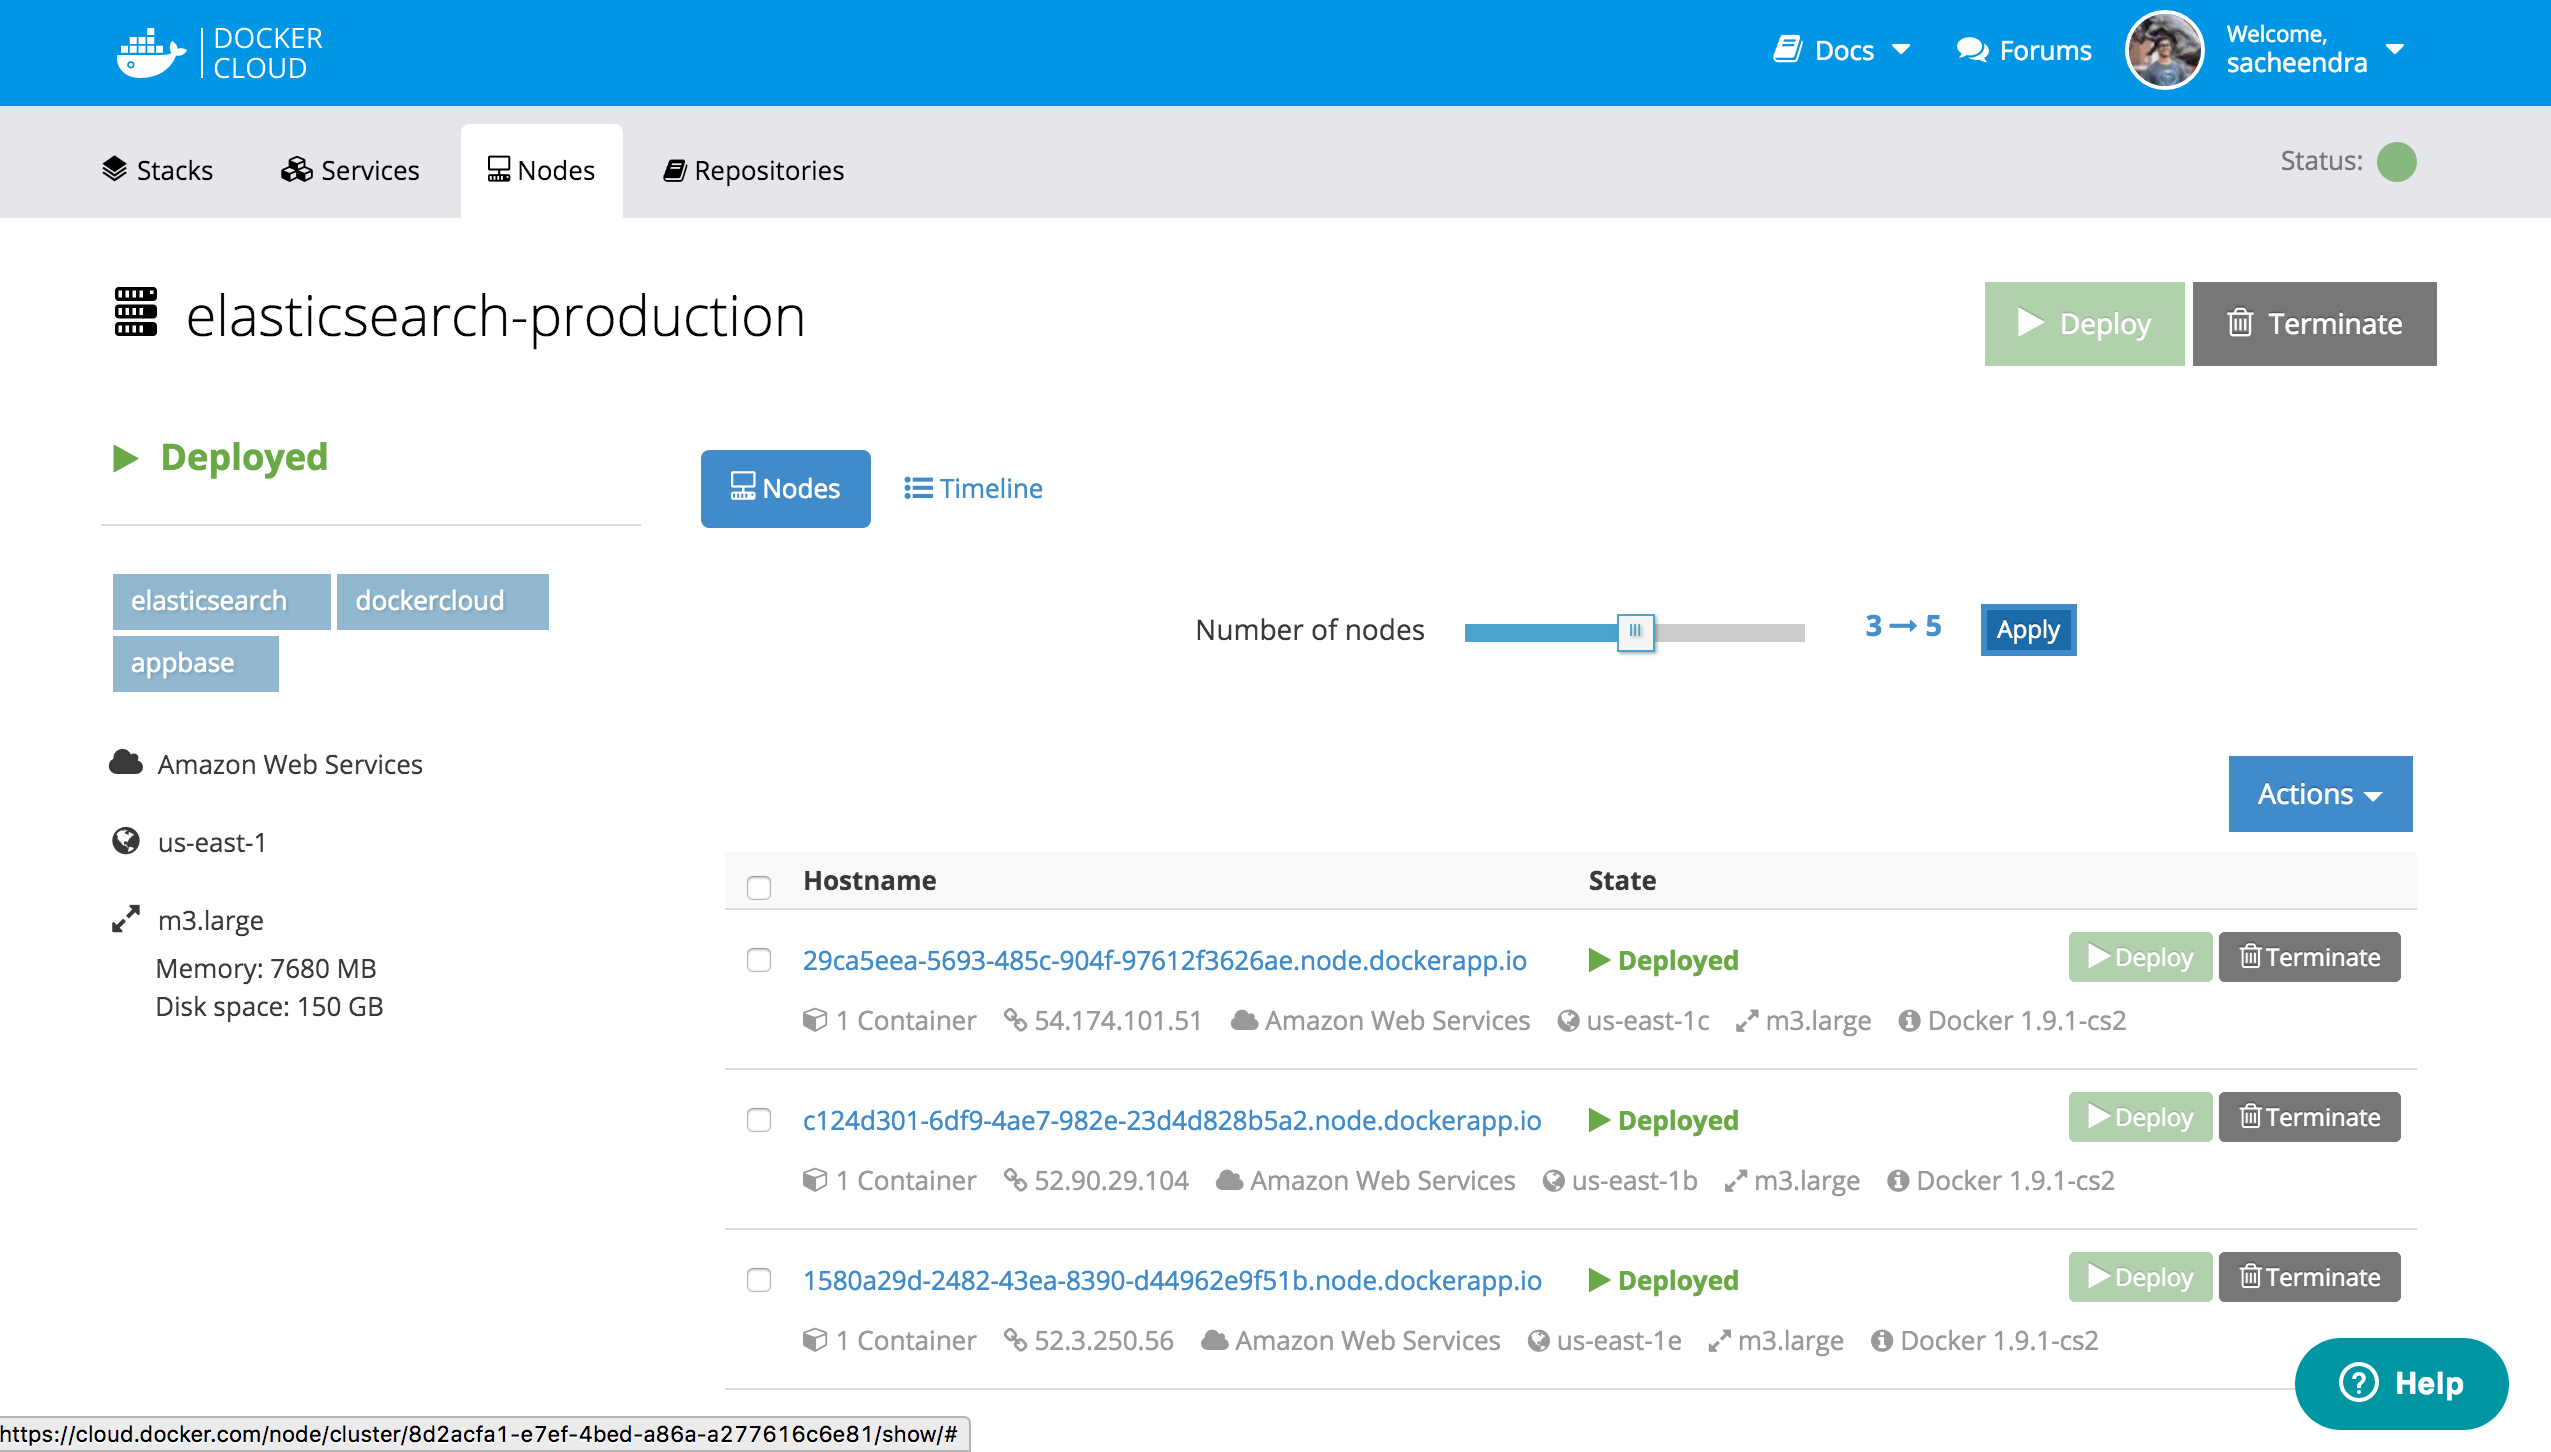 How to Scale and Migrate Elasticsearch with Docker - All